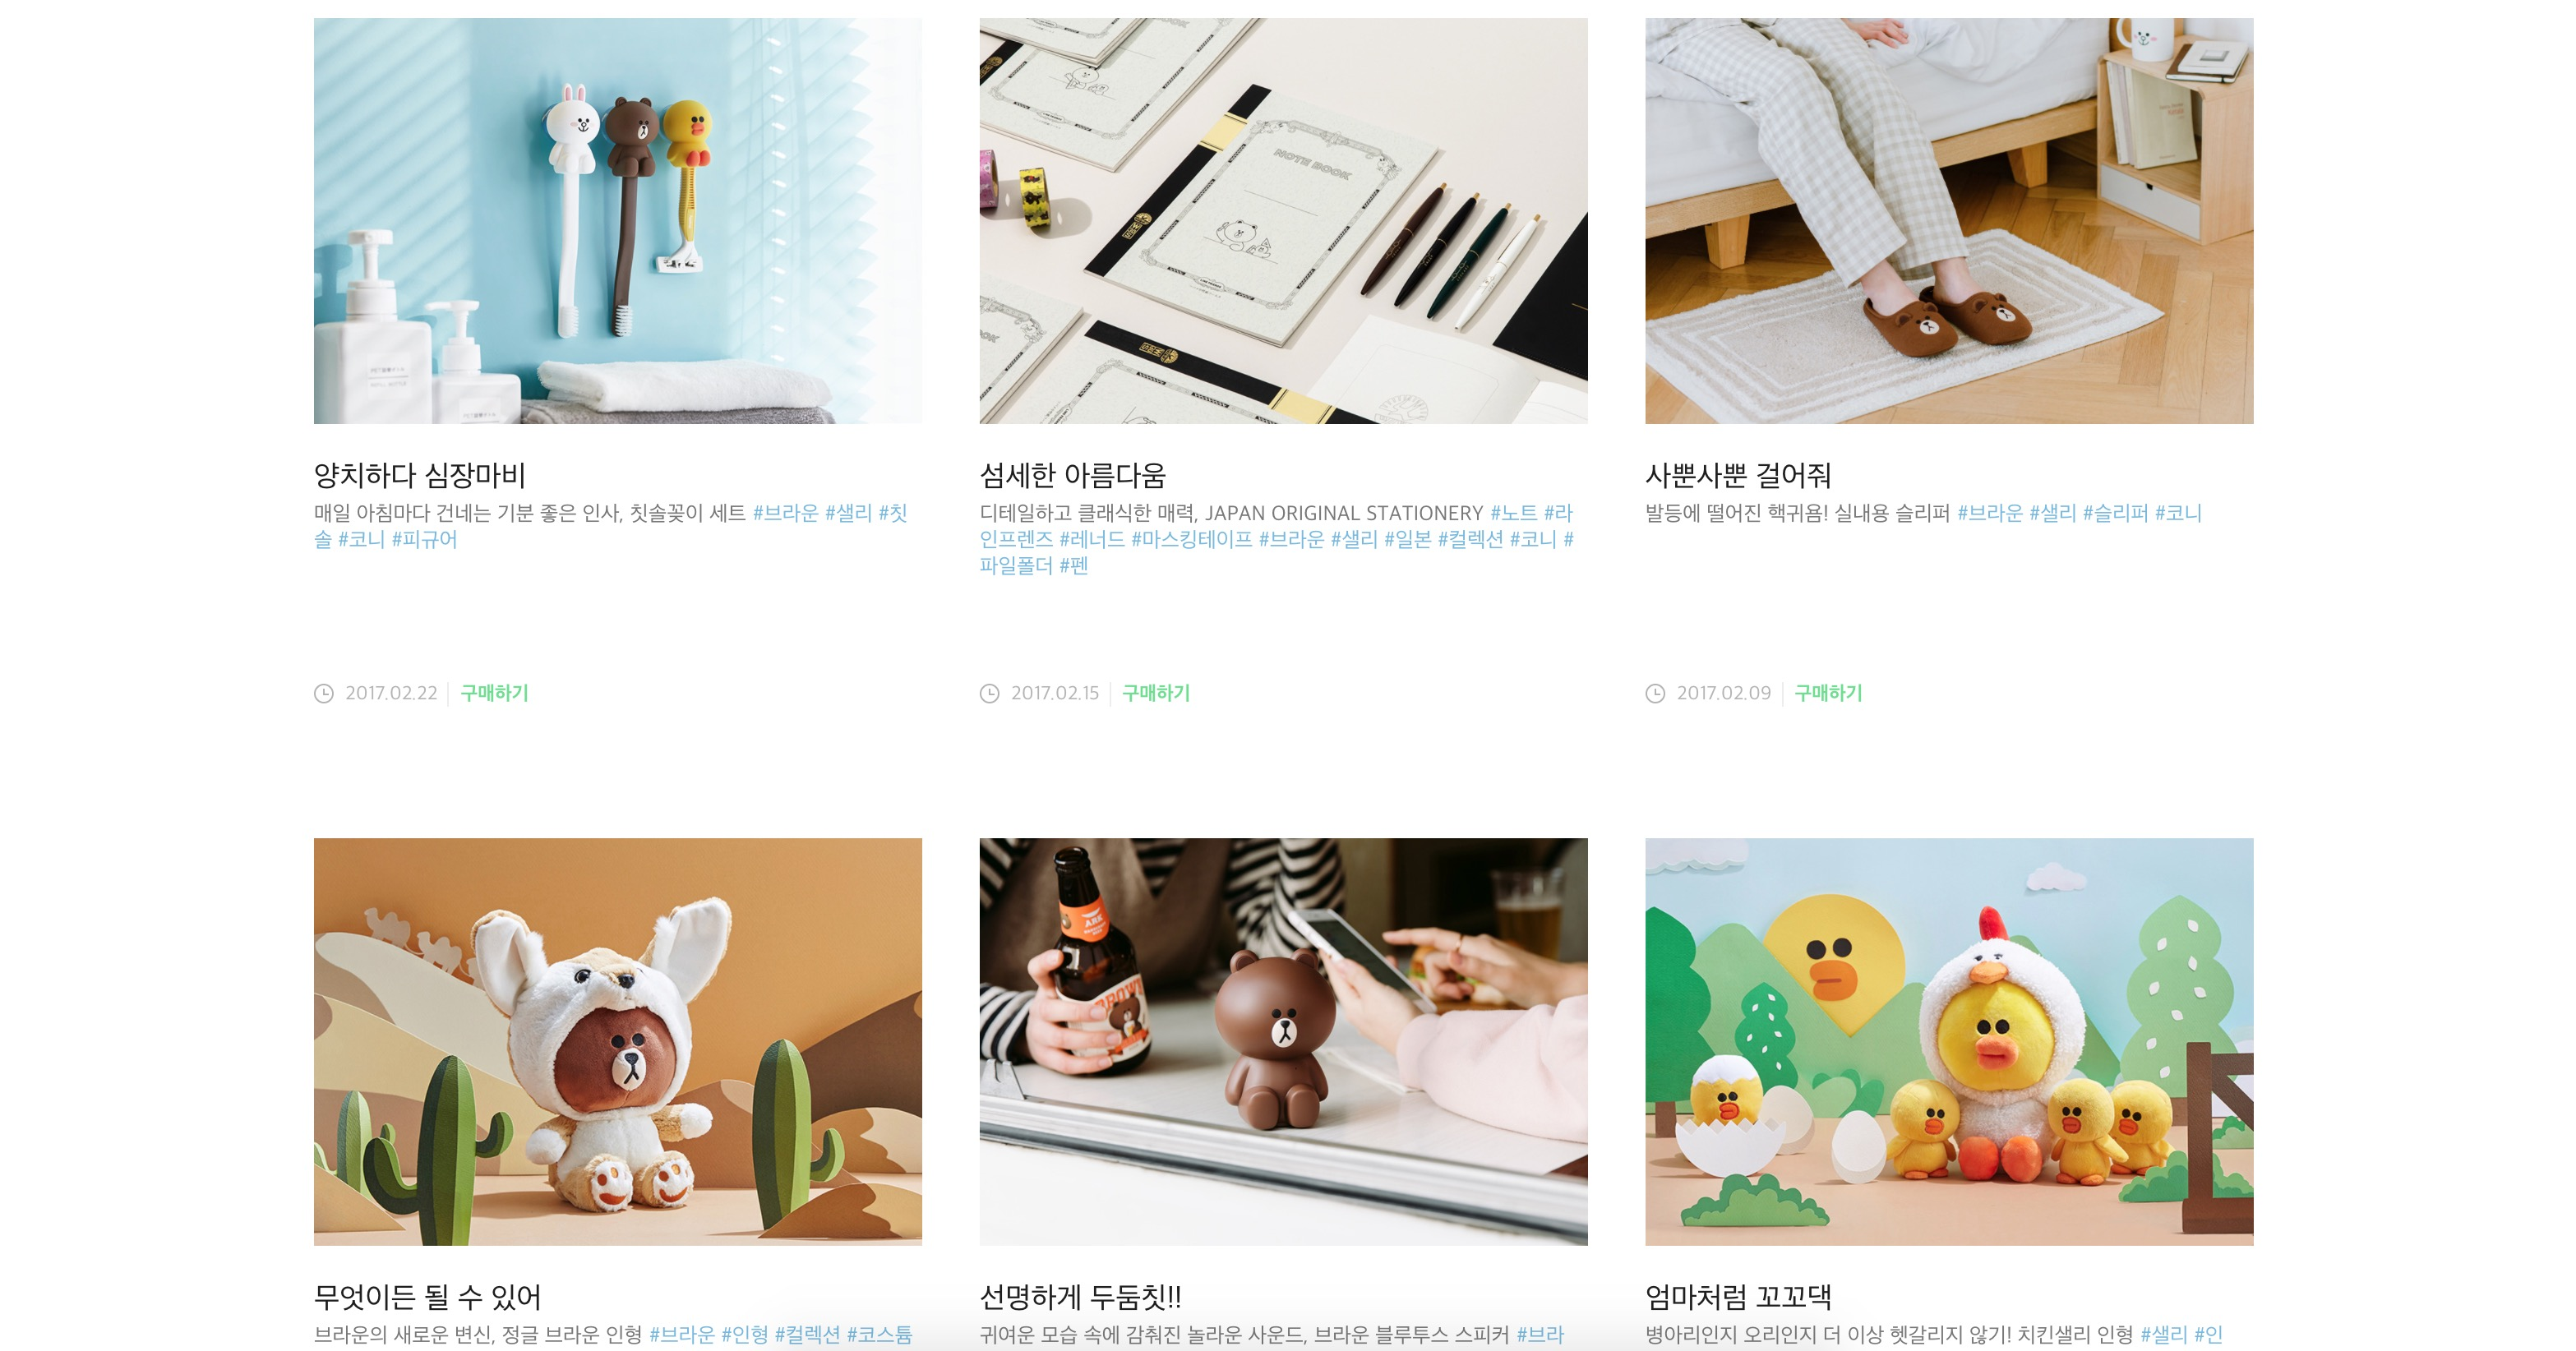 wordpress-linefriends-codemshop-3